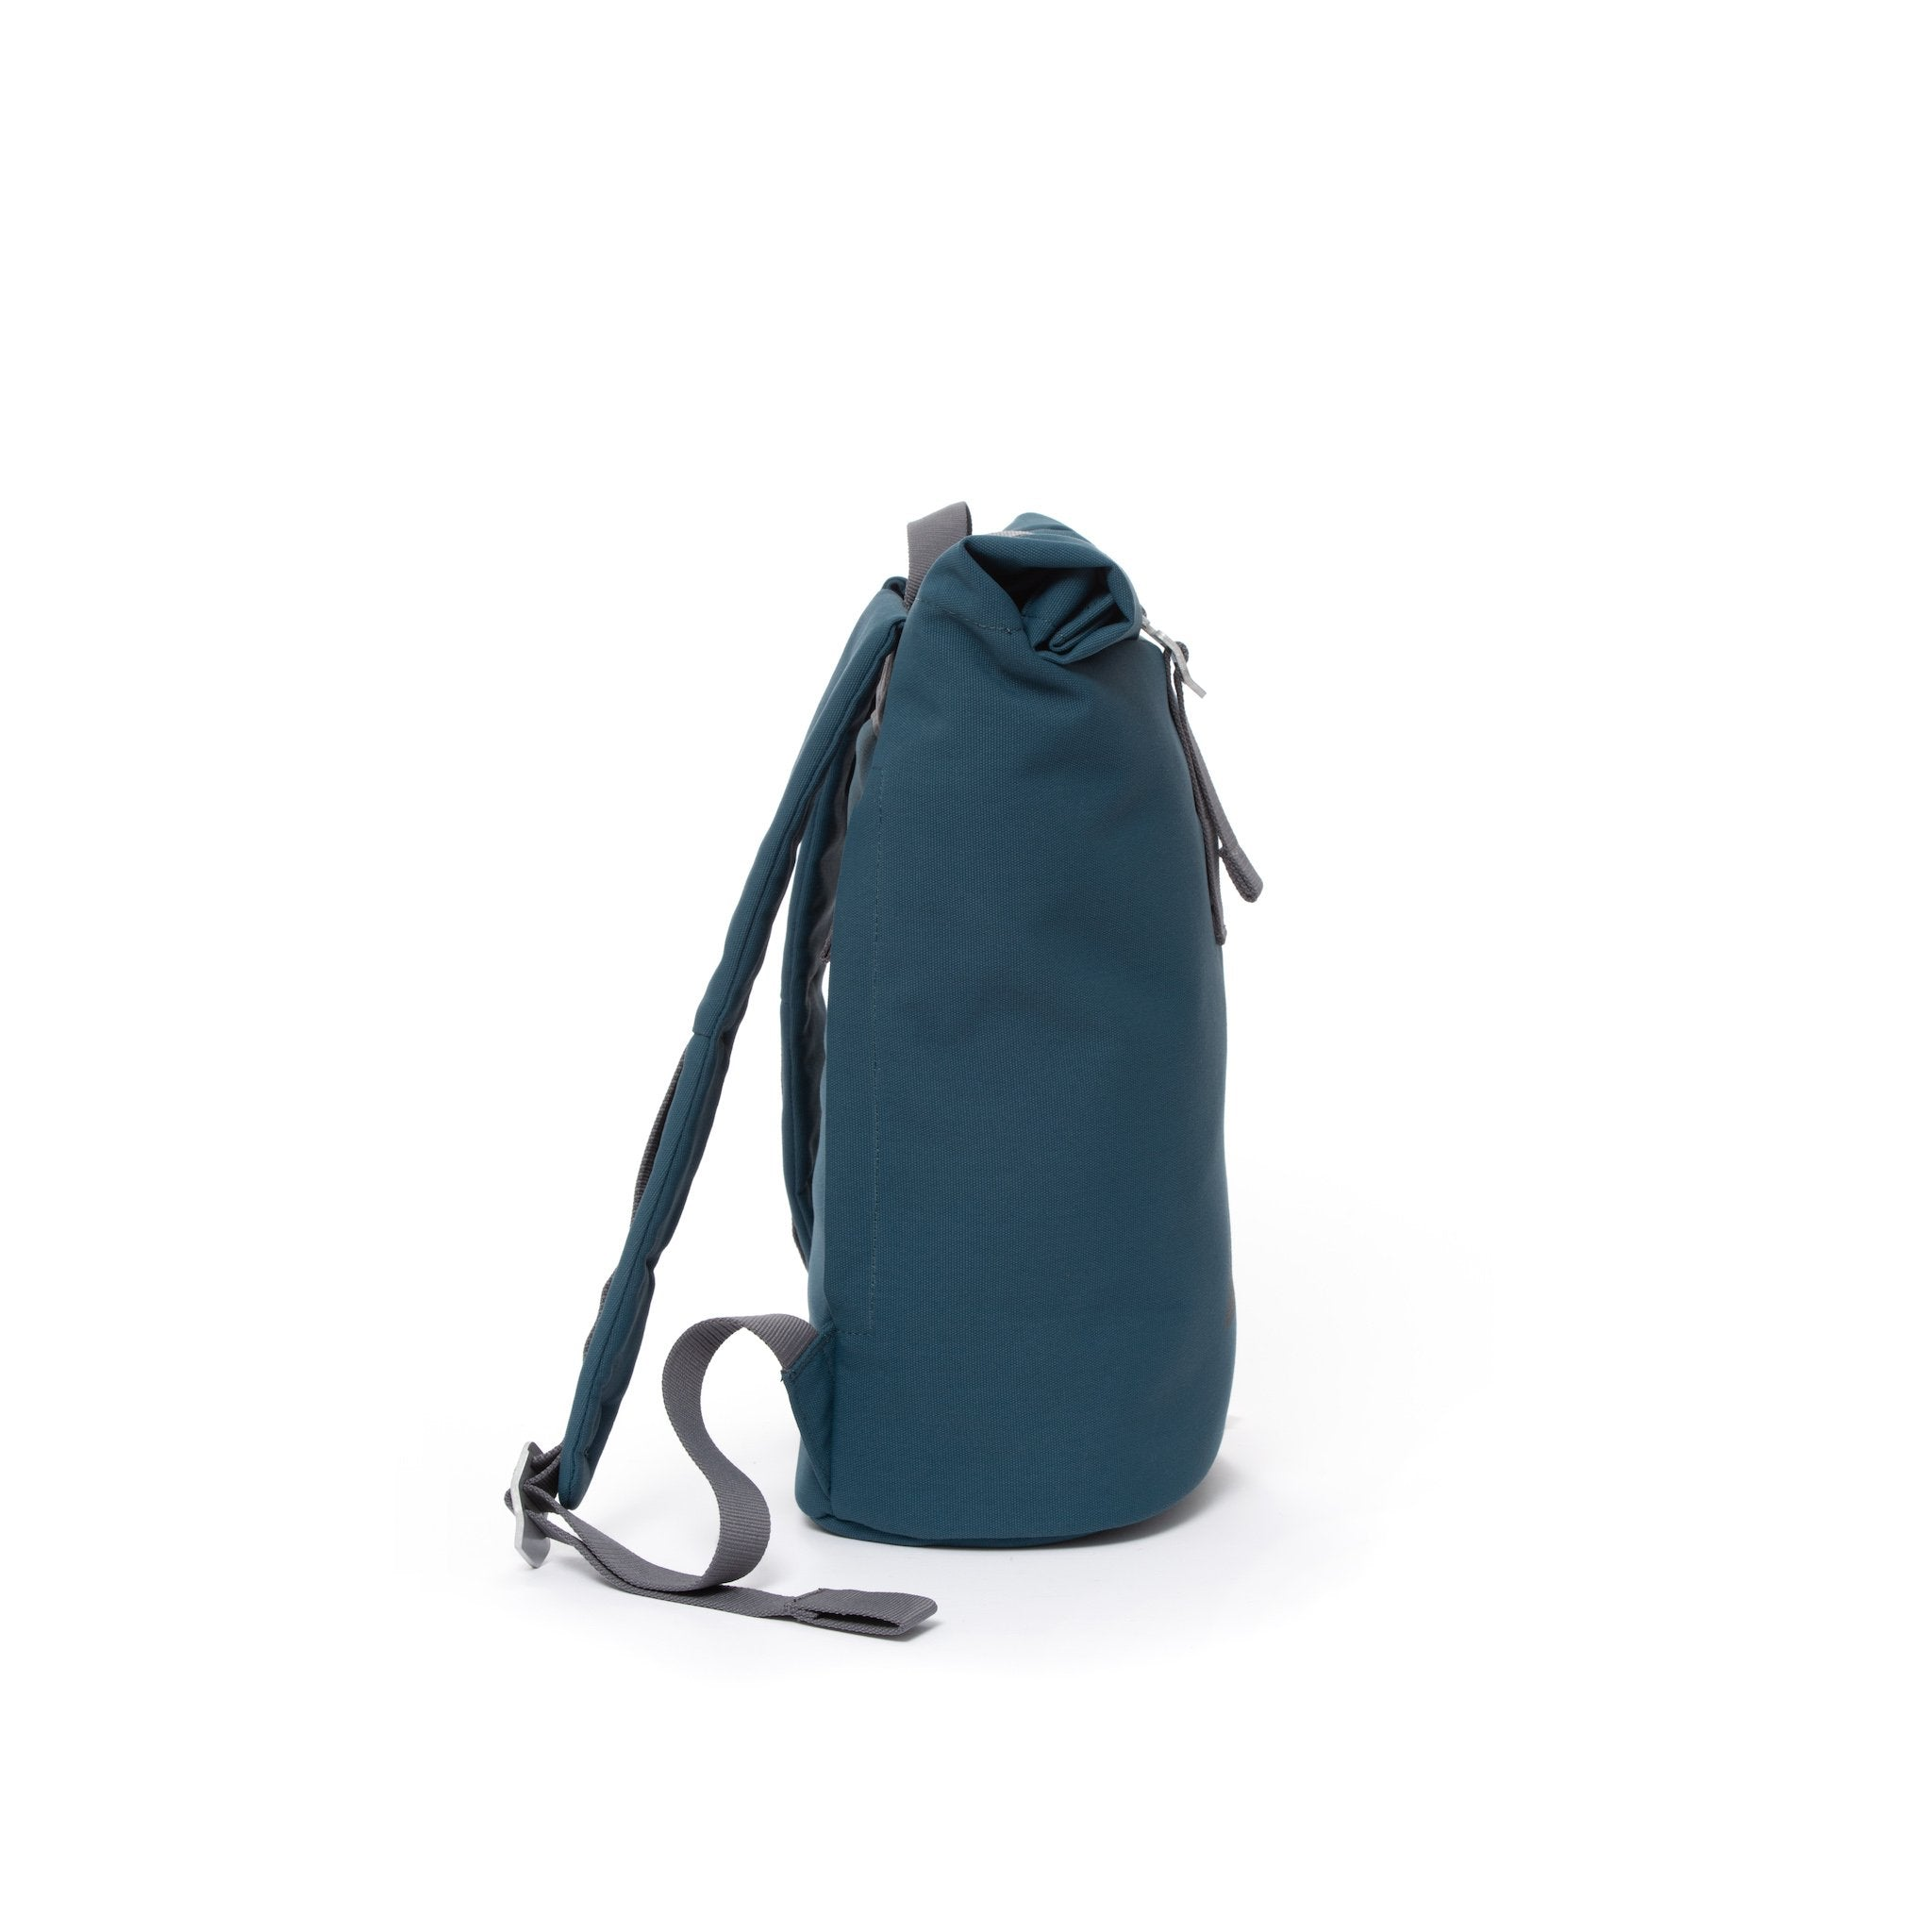 Blue waterproof canvas women's rolltop backpack.